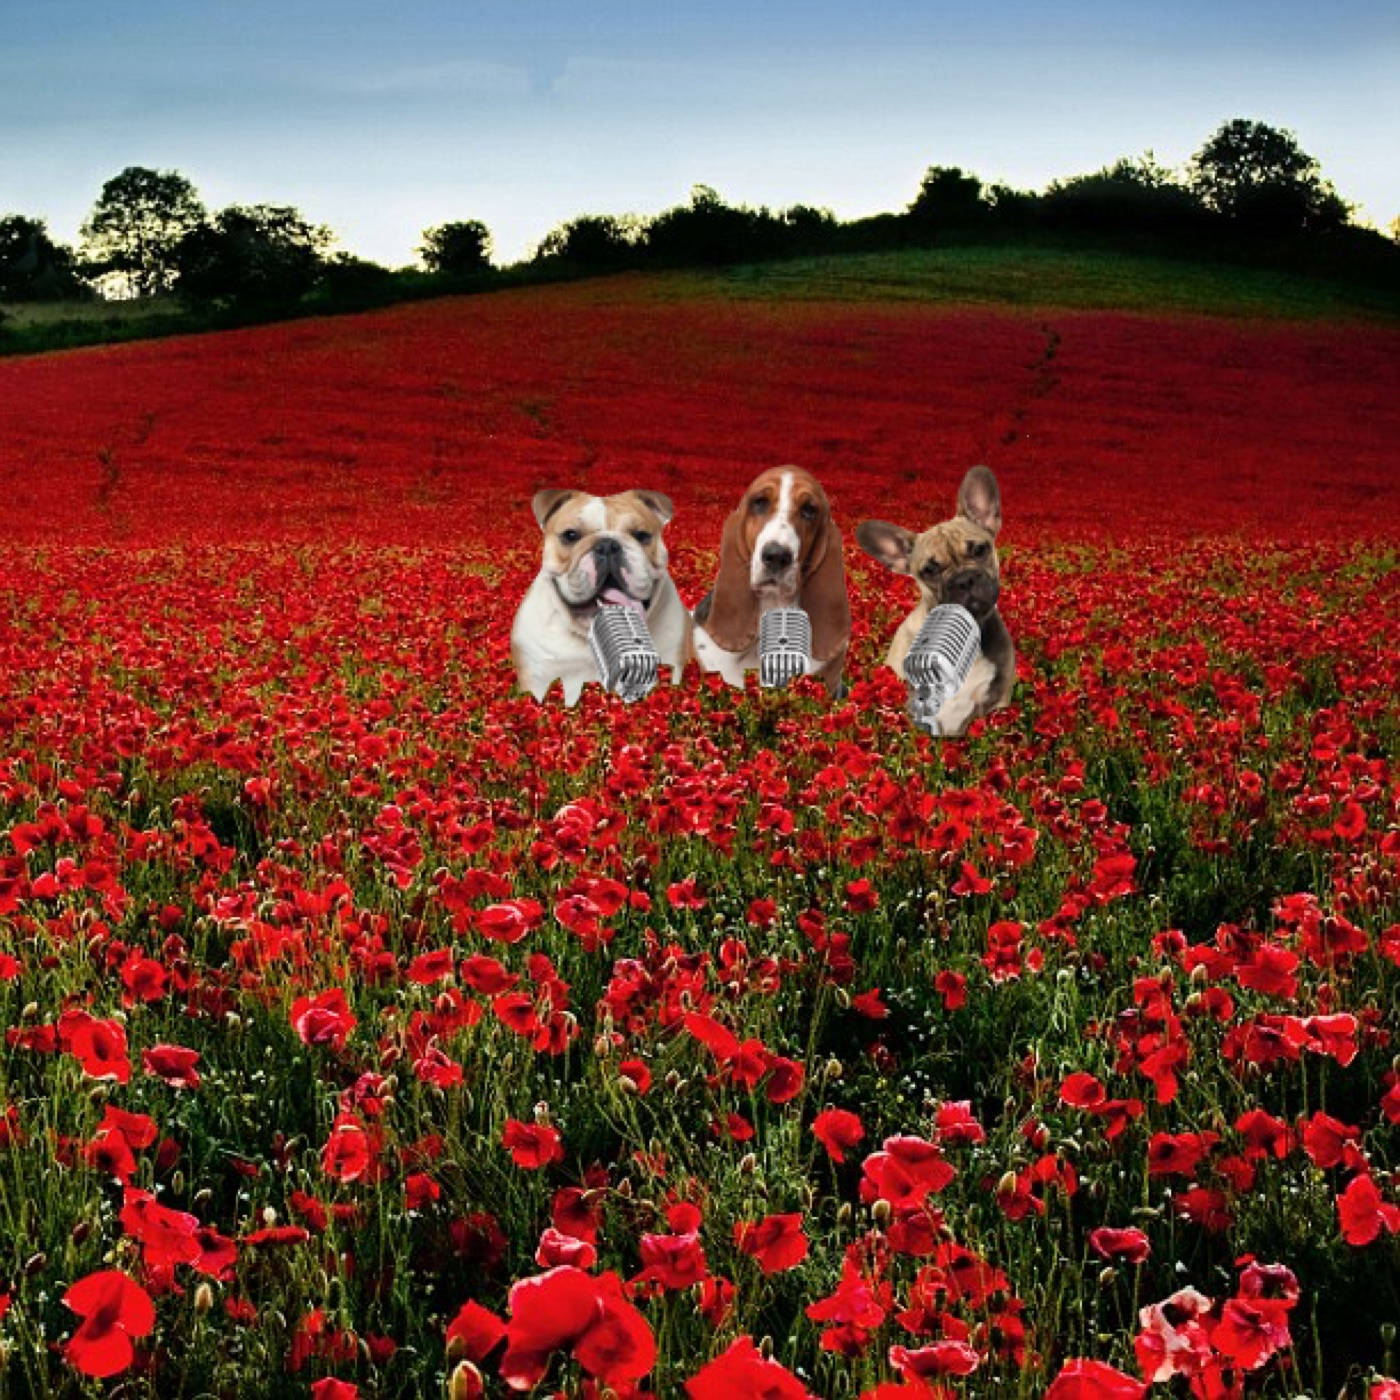 Shed Dogs in poppies.jpg